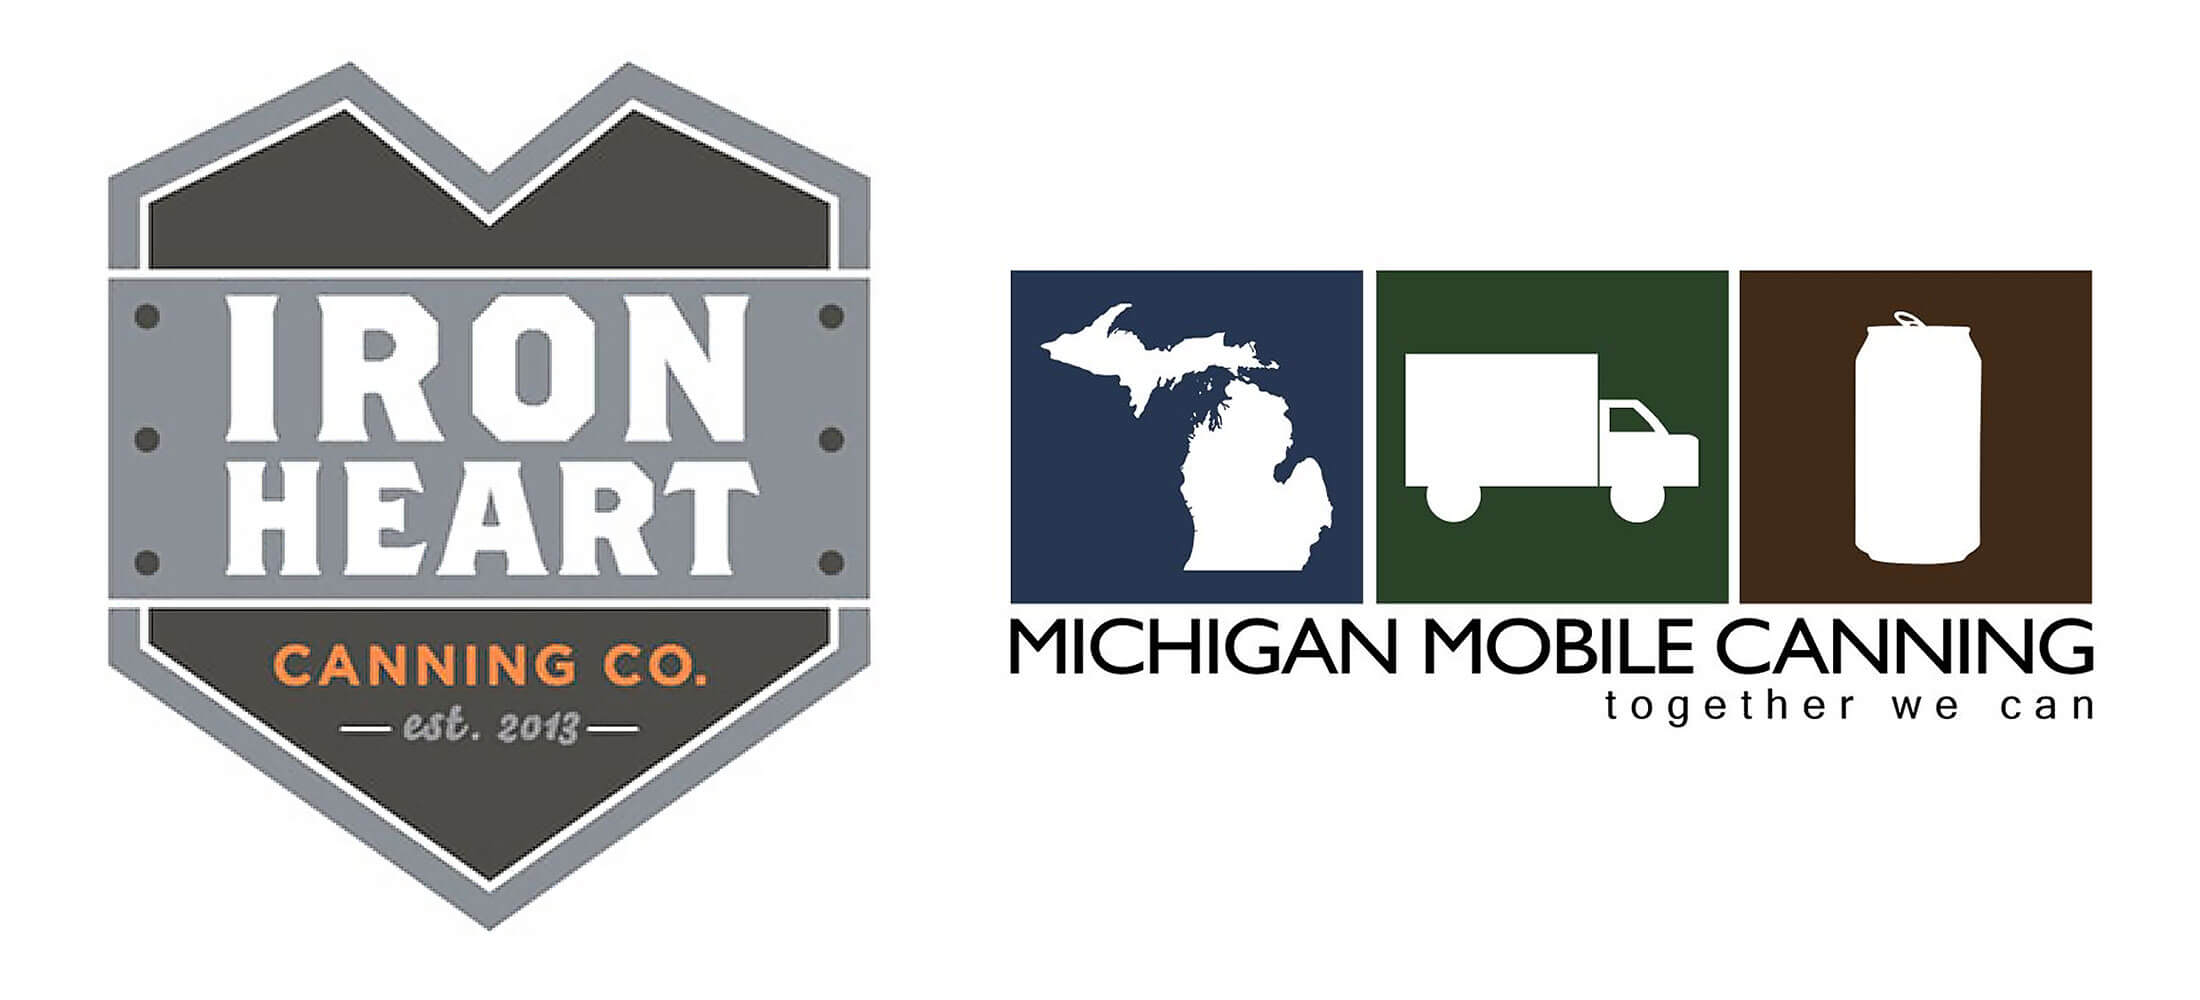 Iron Heart Canning, the largest contiguous canning operation east of the Mississippi, just expanded westward with the acquisition of Michigan Mobile Canning.